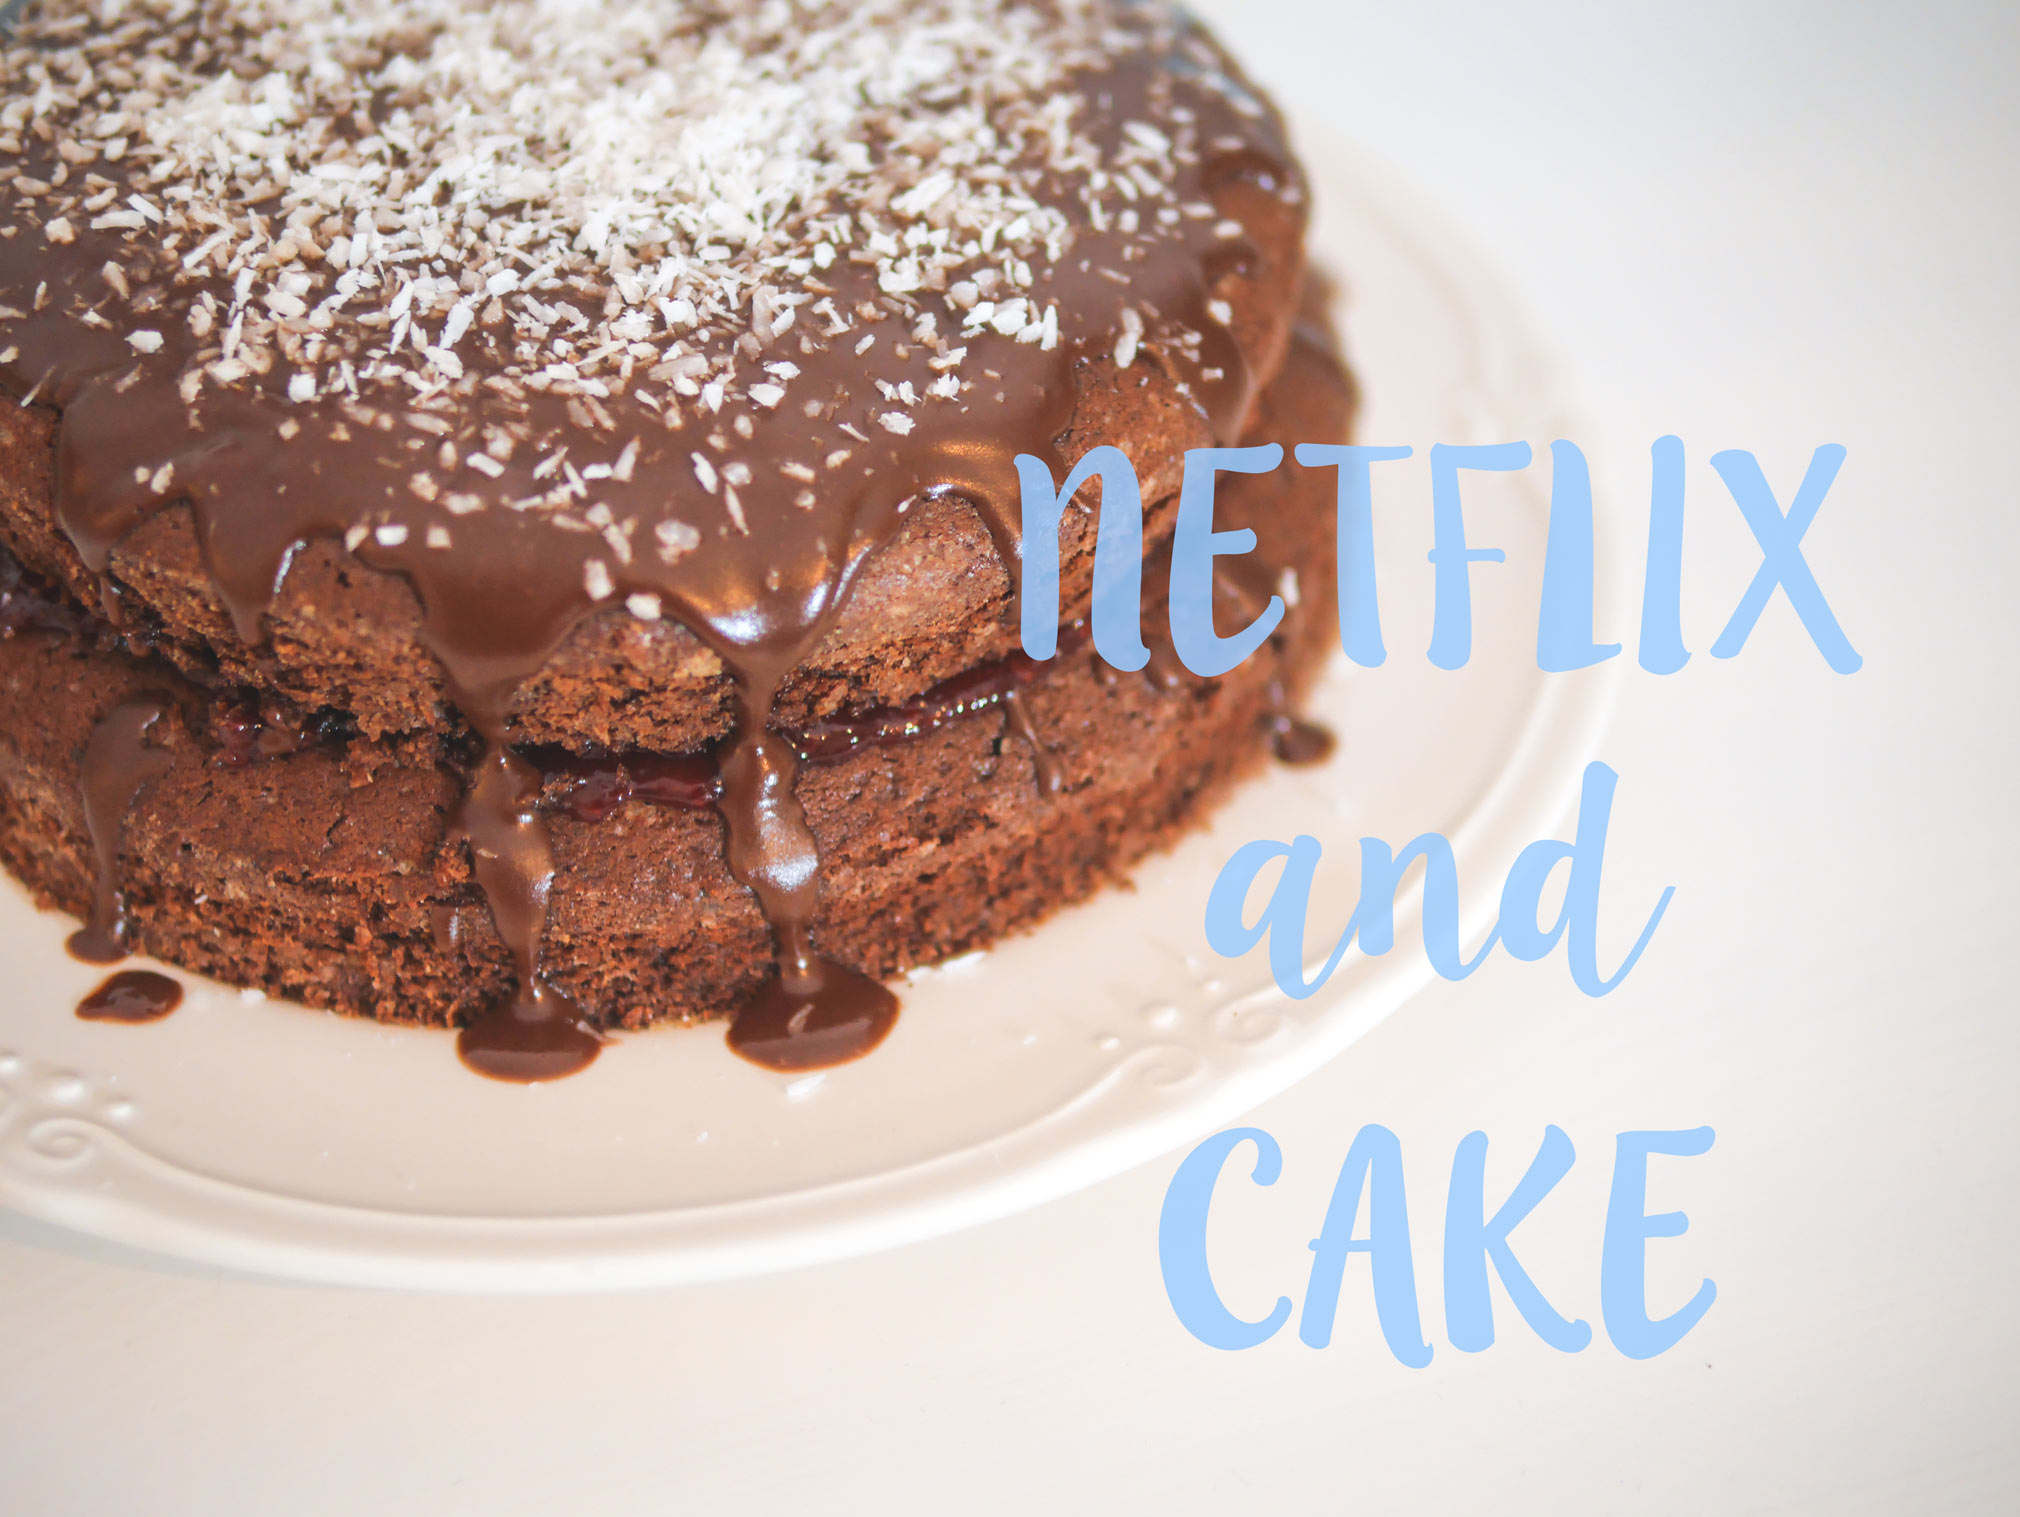 Netflix and Cake - binge watching and baking